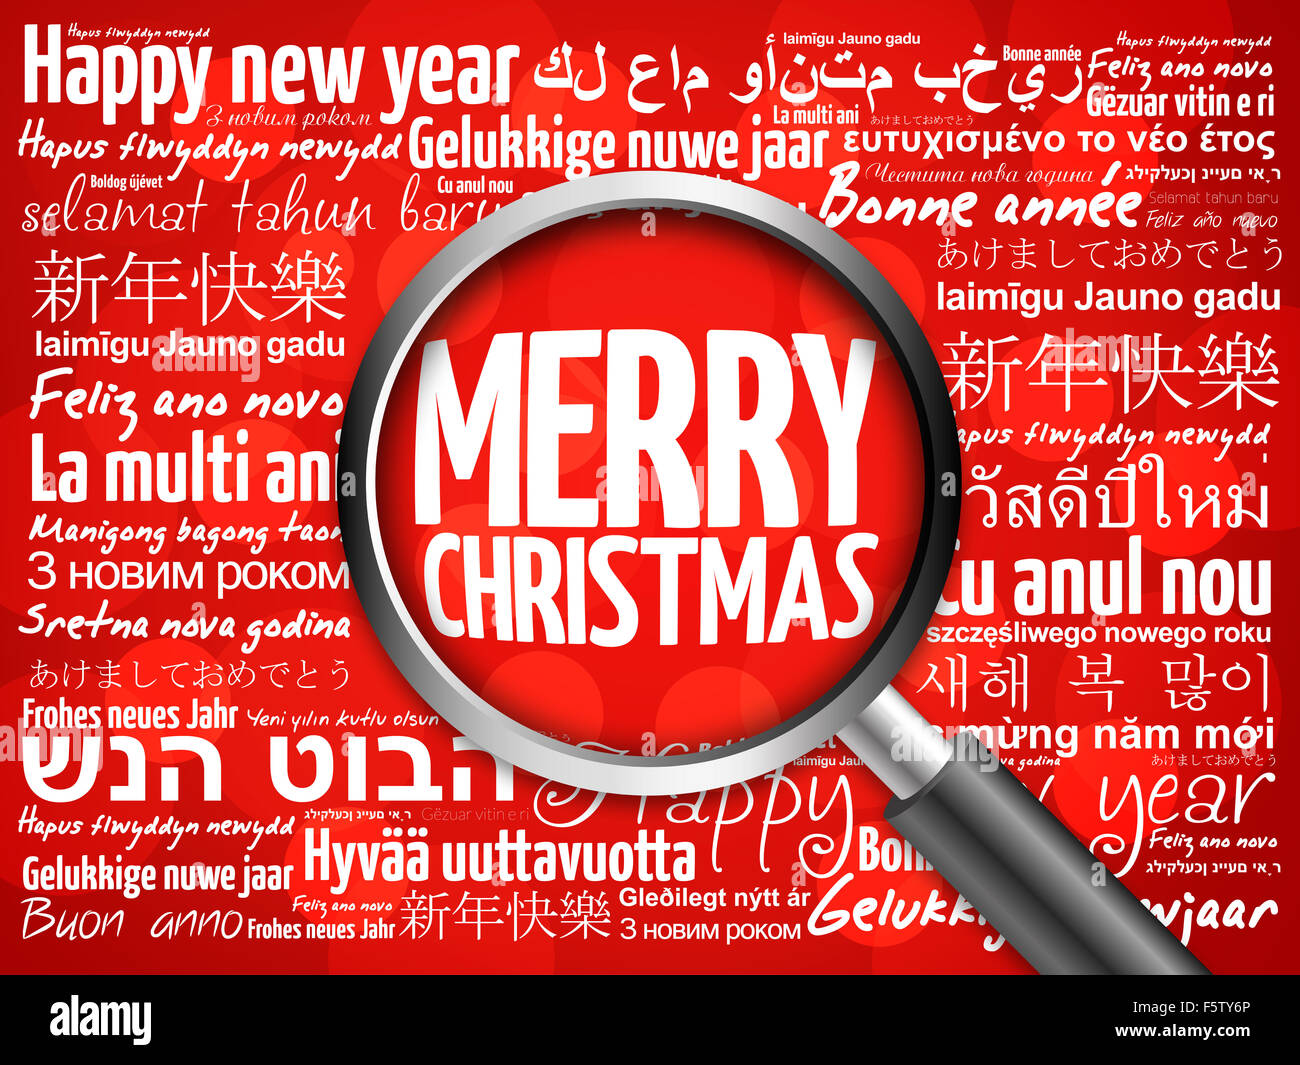 merry christmas happy new year in different languages red background celebration greeting card with magnifying glass